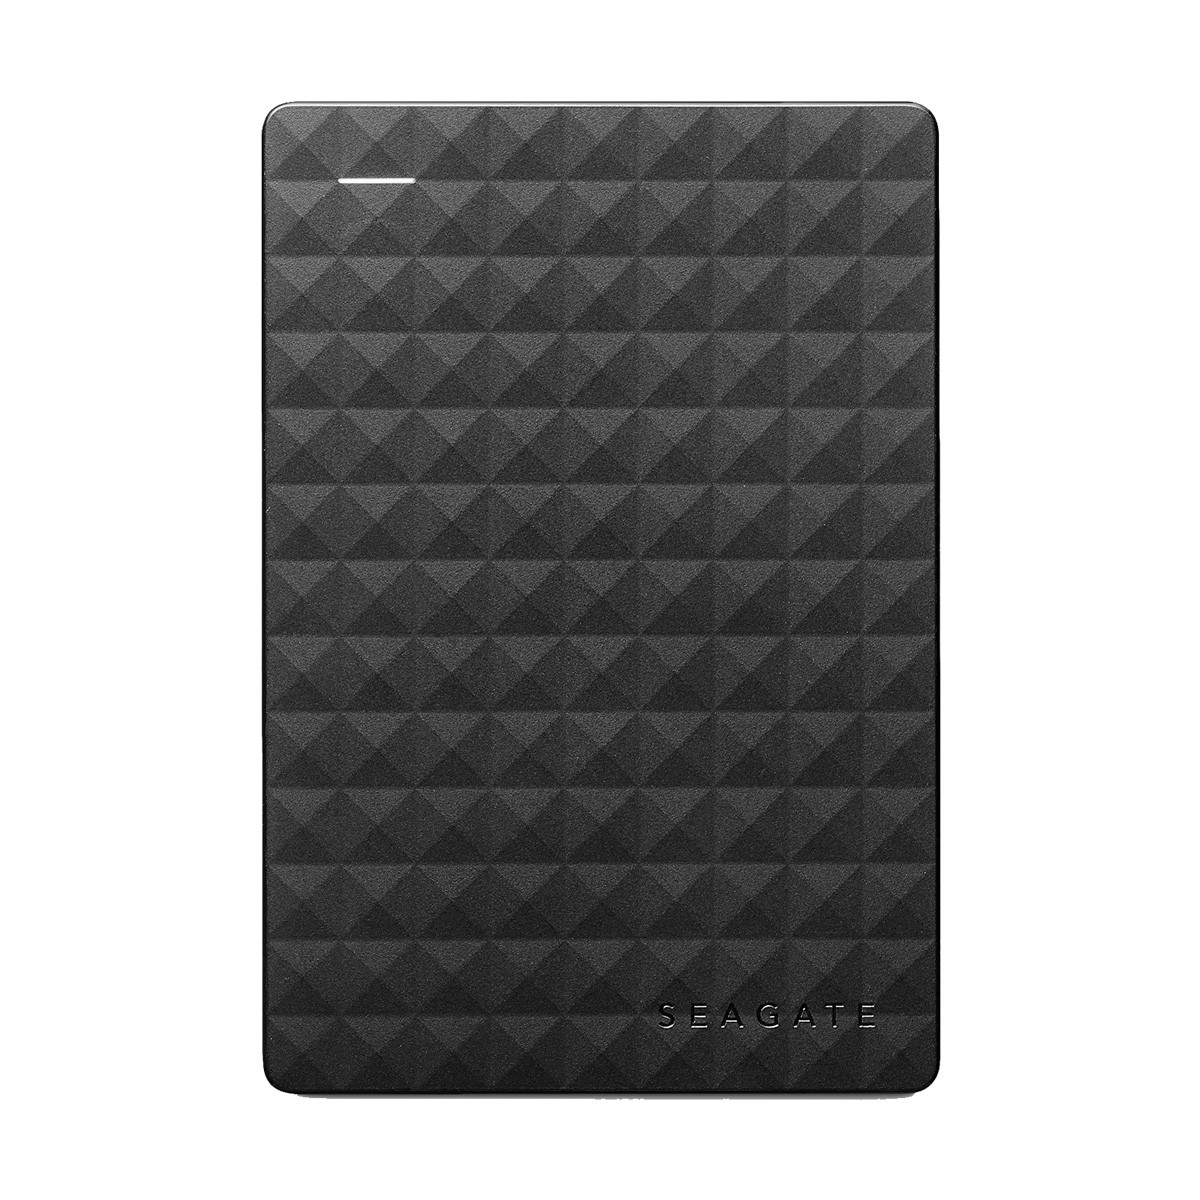 "Expansion Portable Drive 2.5"" 1TB USB 3.0 Seagate STEA1000400 image"